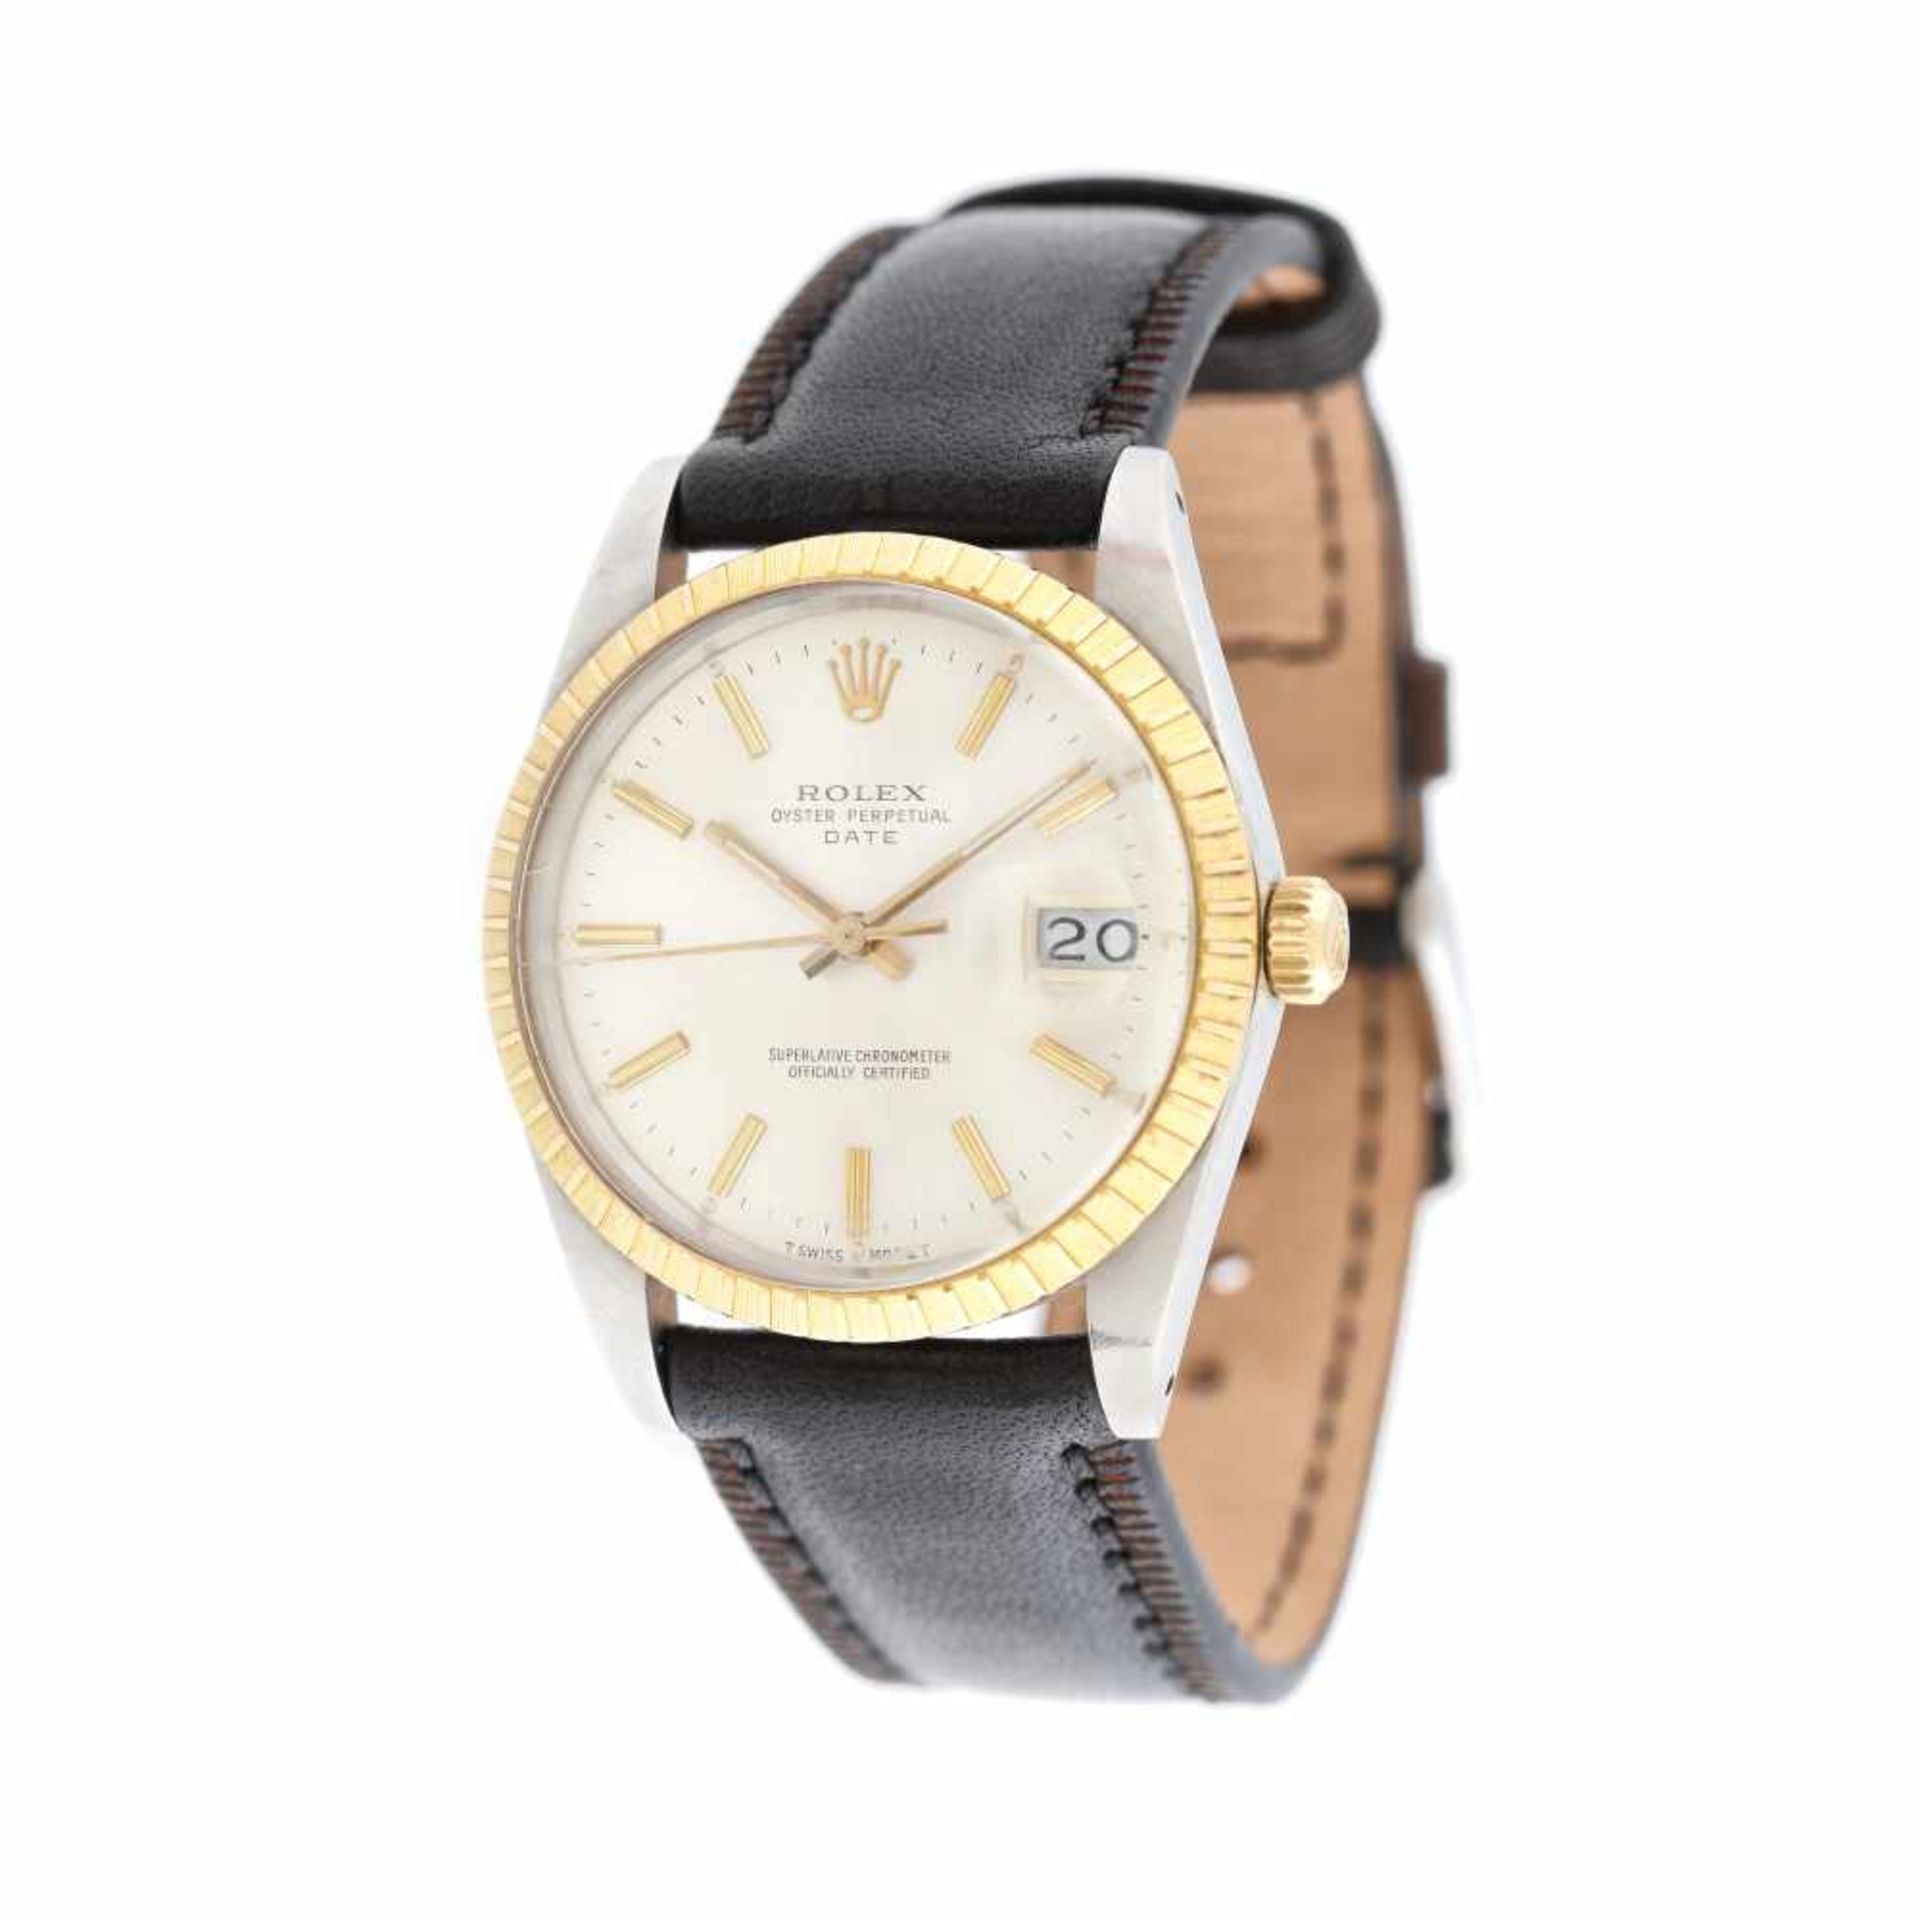 Rolex Oyster Perpetual Date wristwatch, gold and steel, men